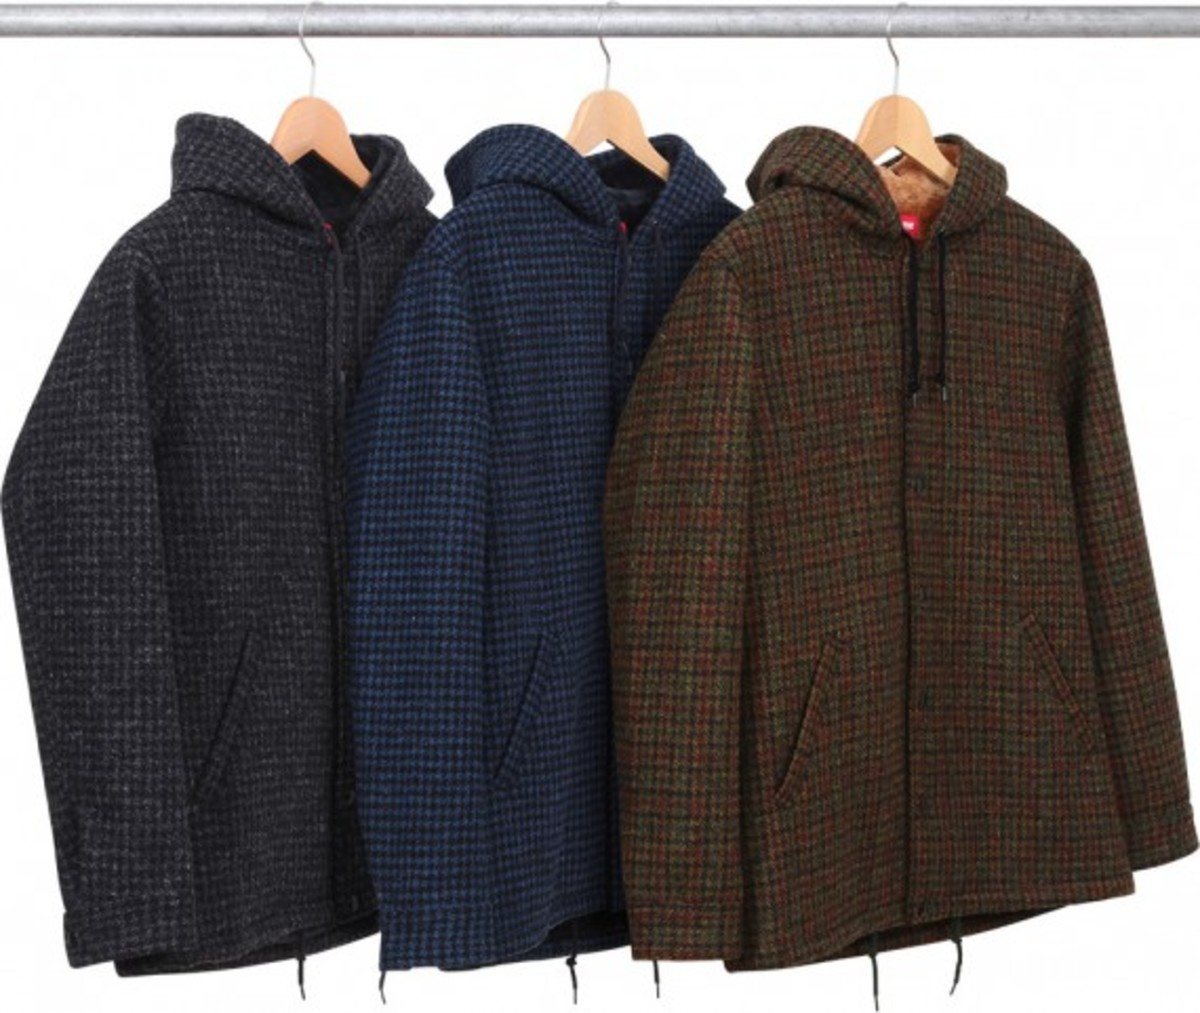 3-harris_tweed--r--_hooded_coaches_jacket-zoom_1345455006